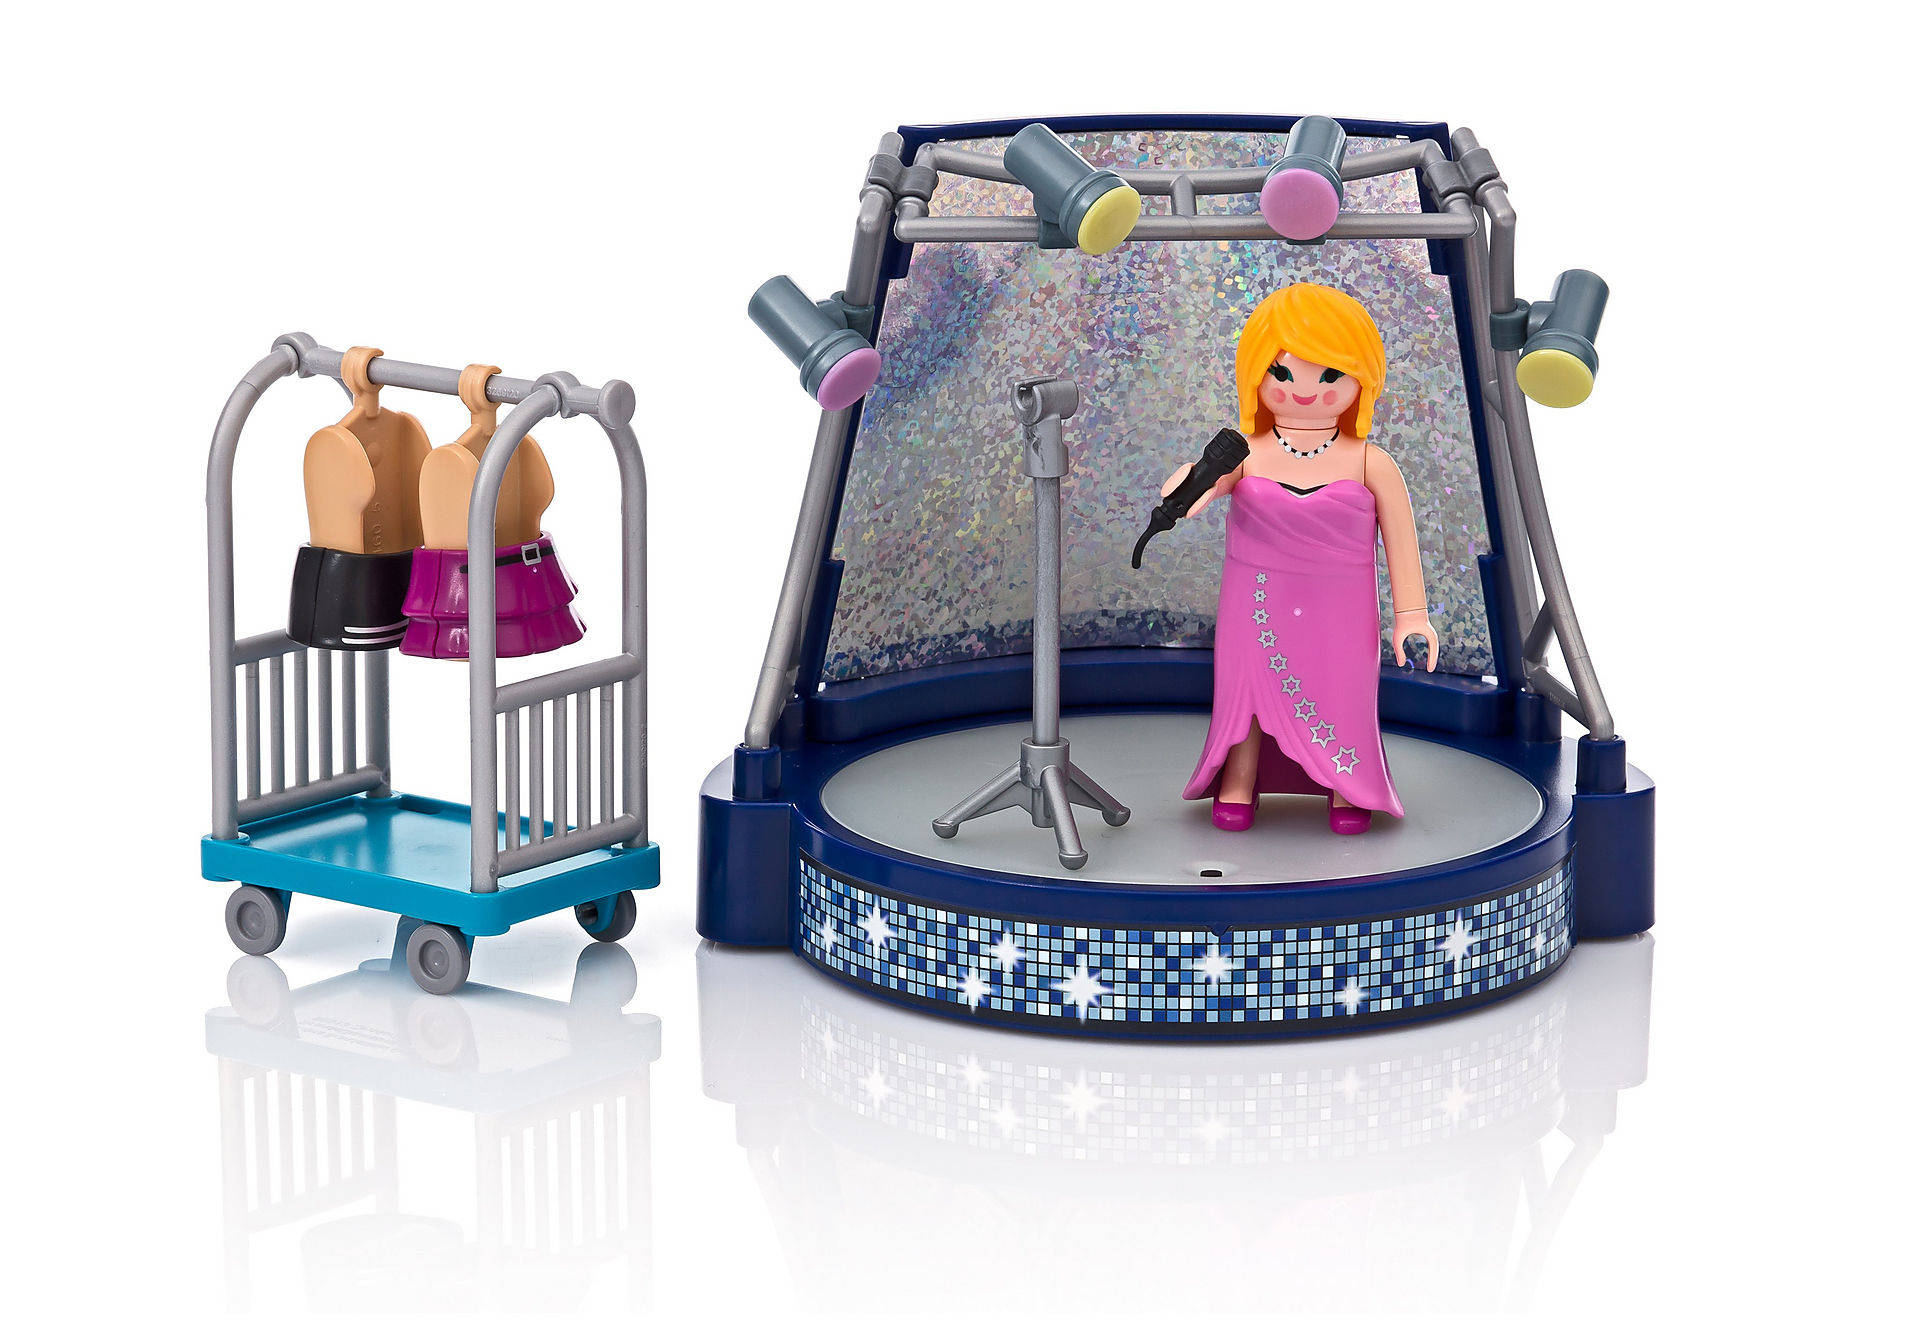 360degree image 1